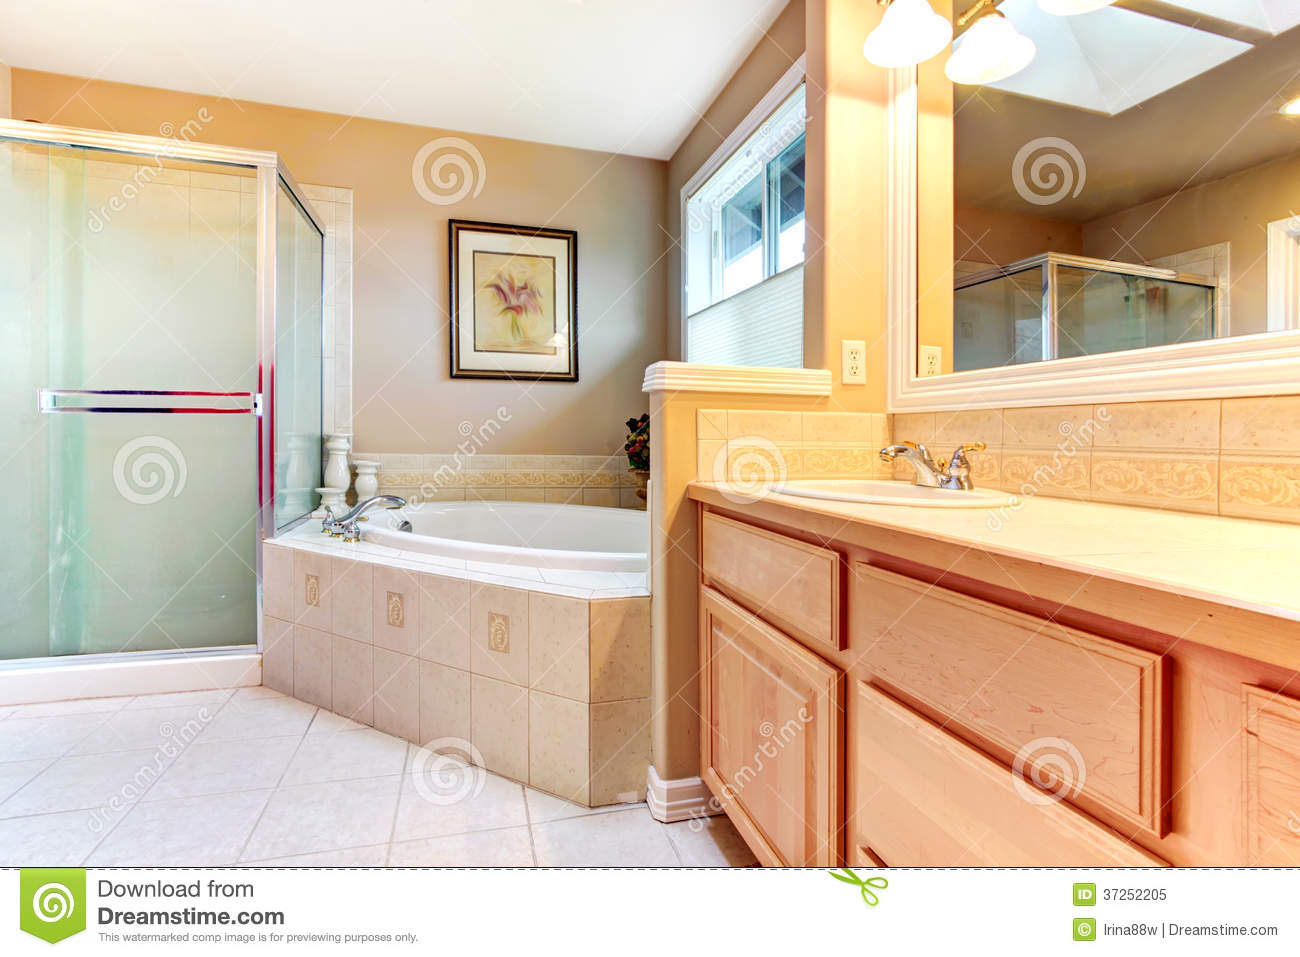 Gabinetes De Baño Pr:Wood Floor in Bathroom with Beige Cabinets